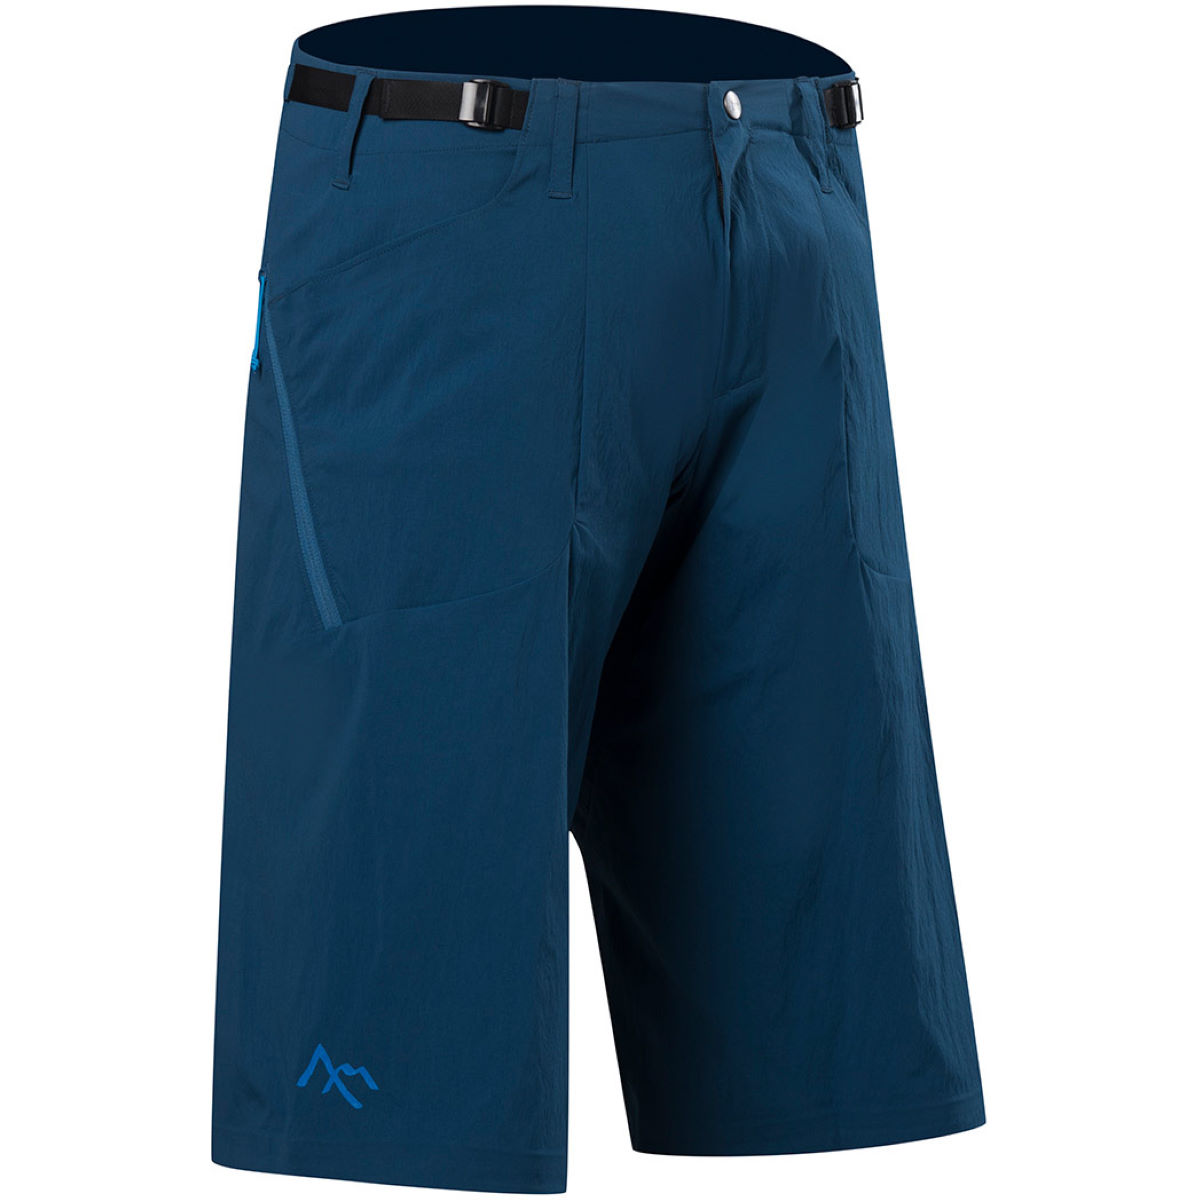 Short 7Mesh Glidepath - XS 2 Ball Blue Shorts VTT